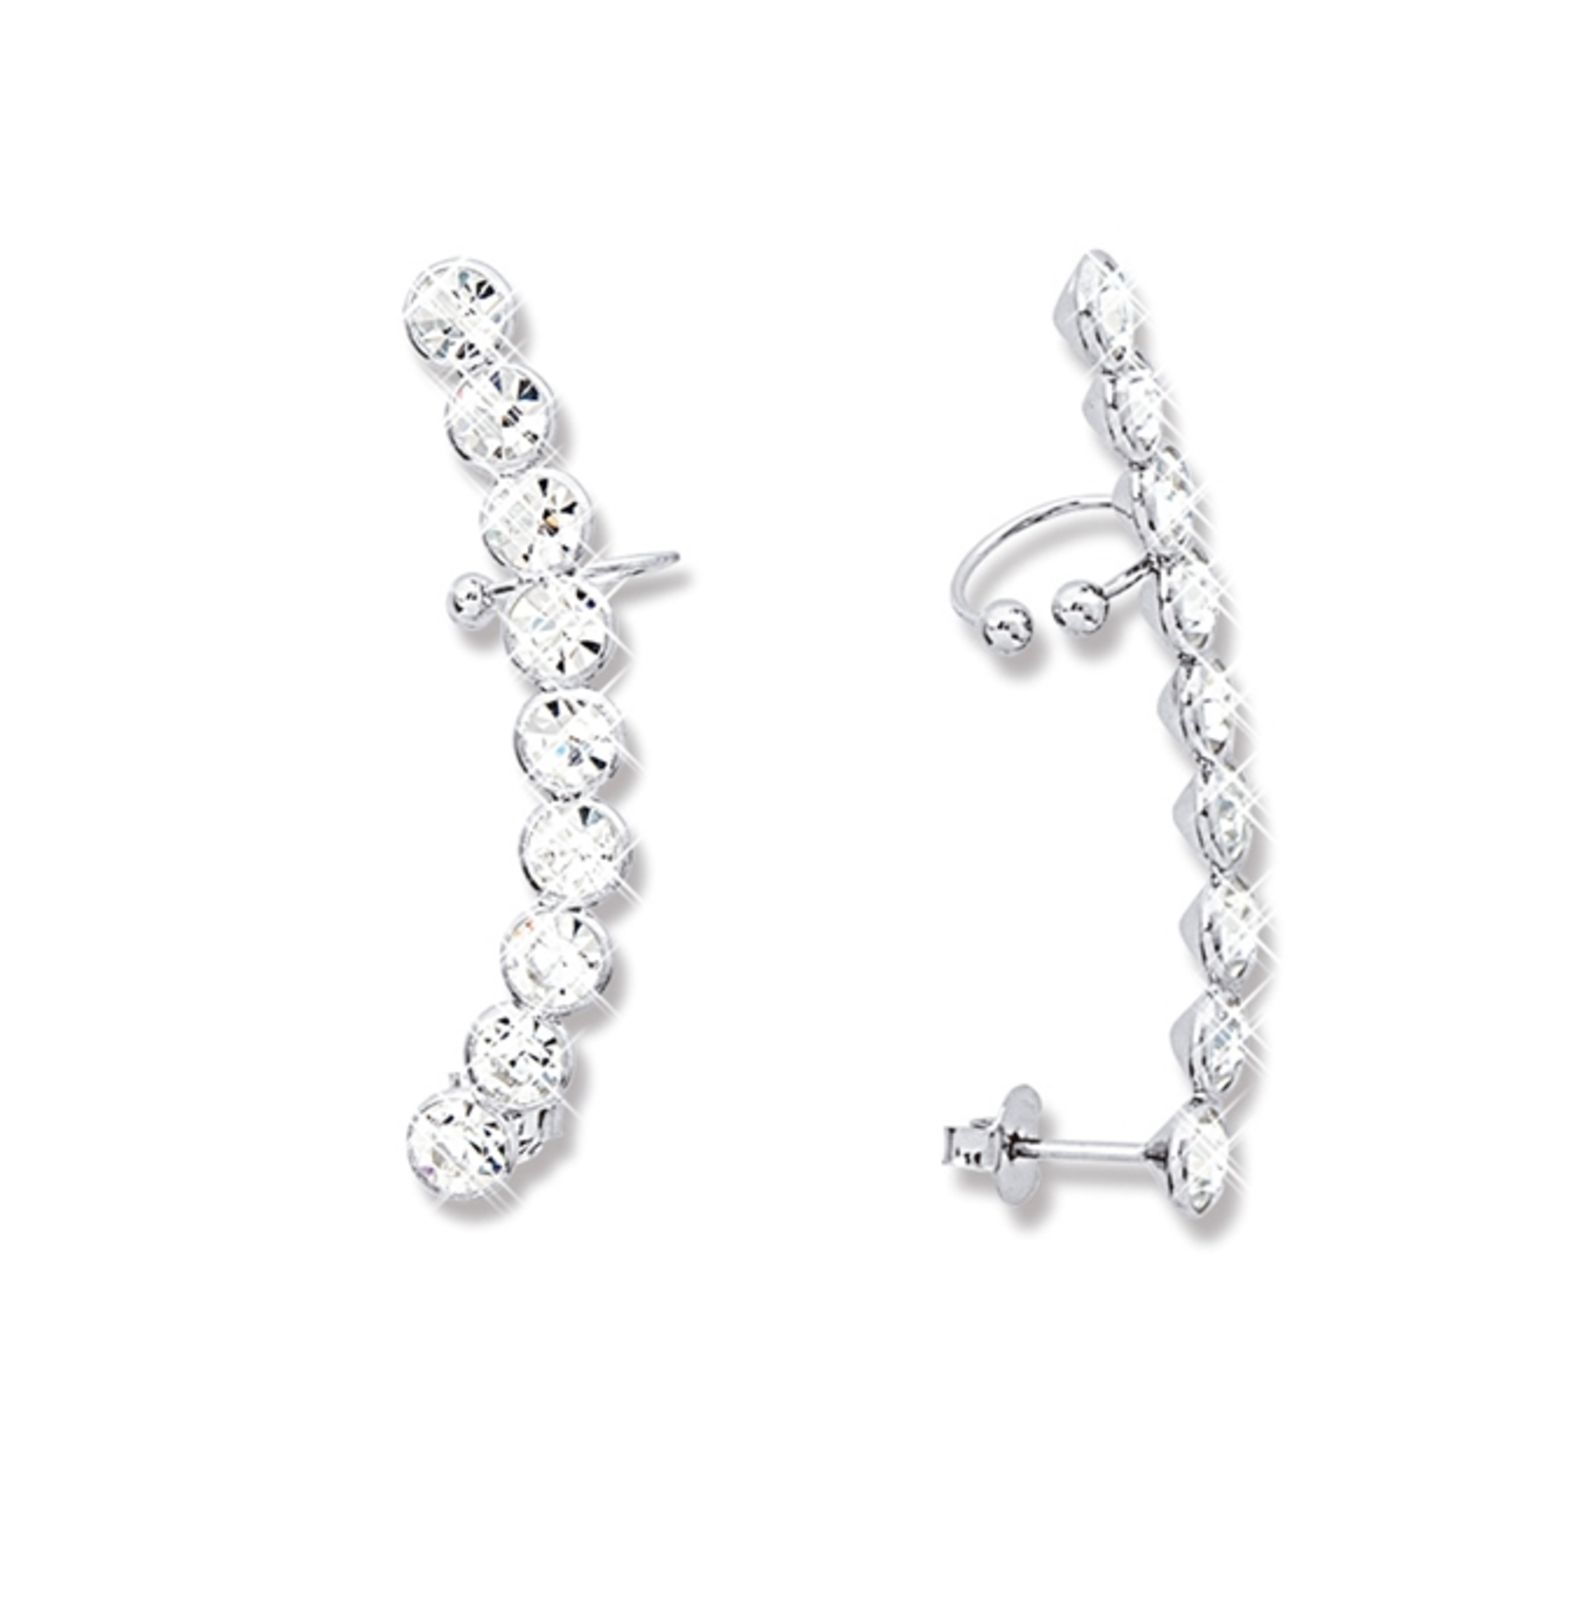 Brinco Le Diamond Ear Cuff Prata com Strass